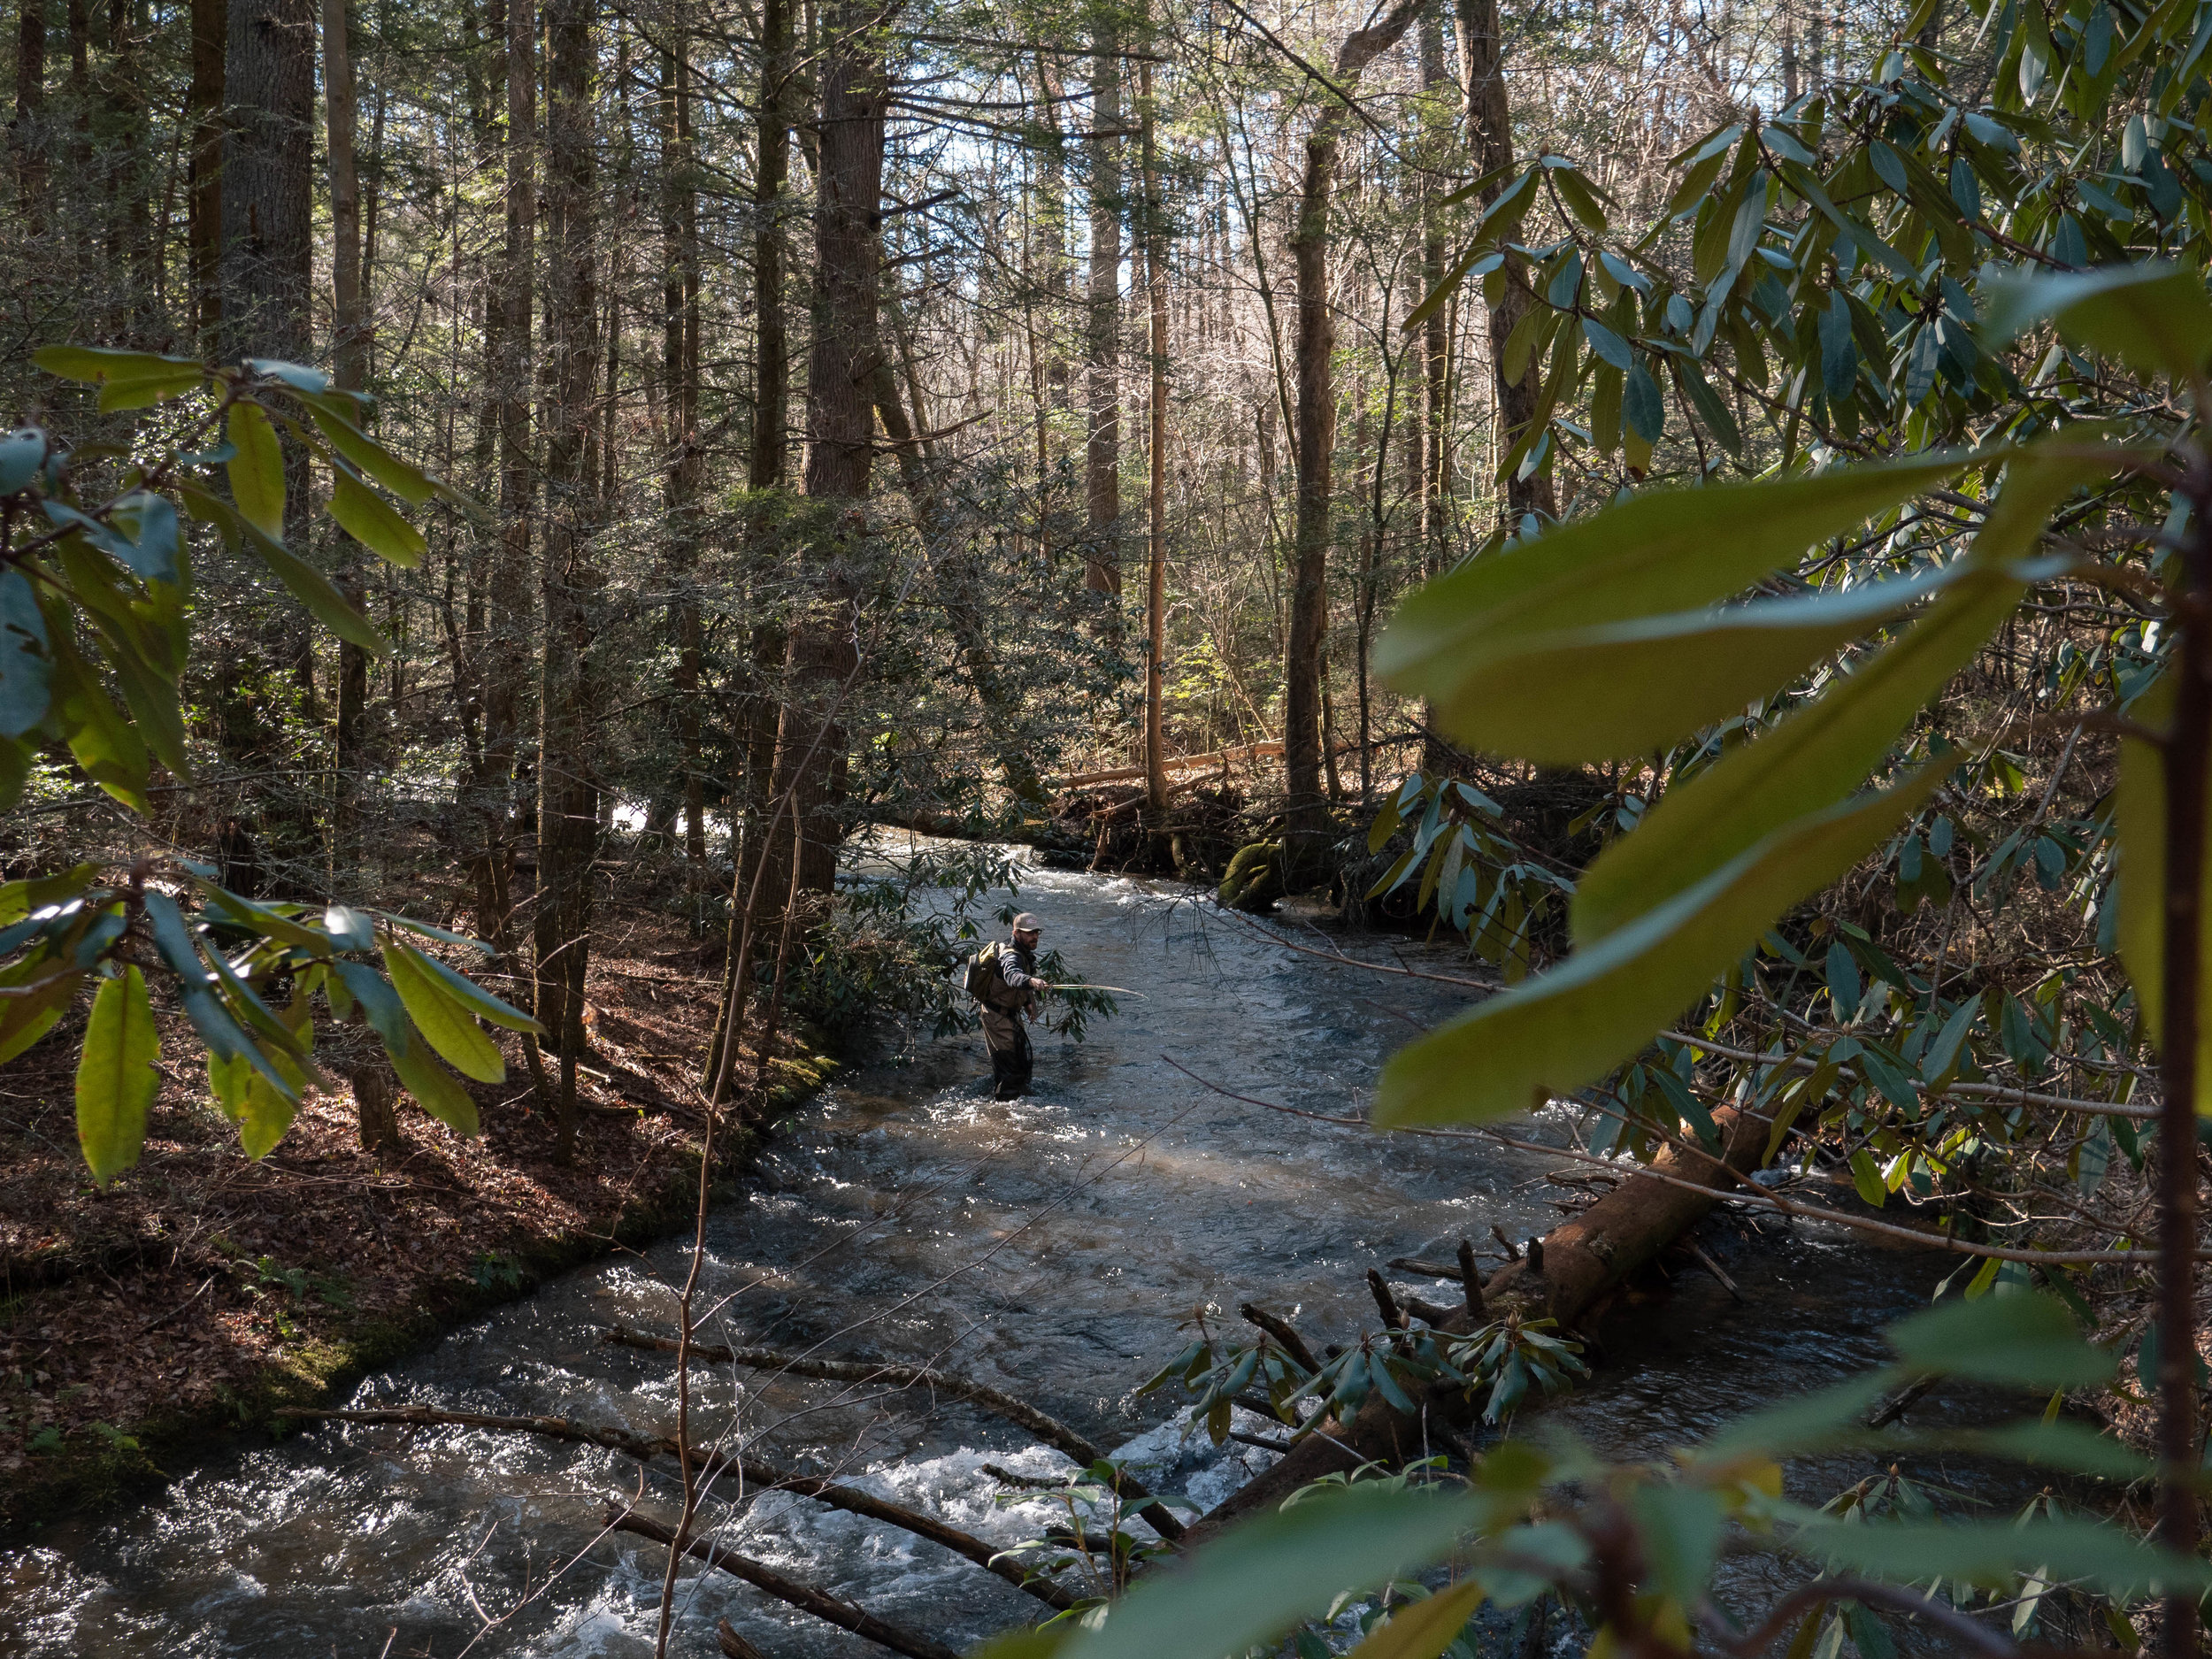 Waters Creek becomes a medium-sized flow in places, especially in the bends.